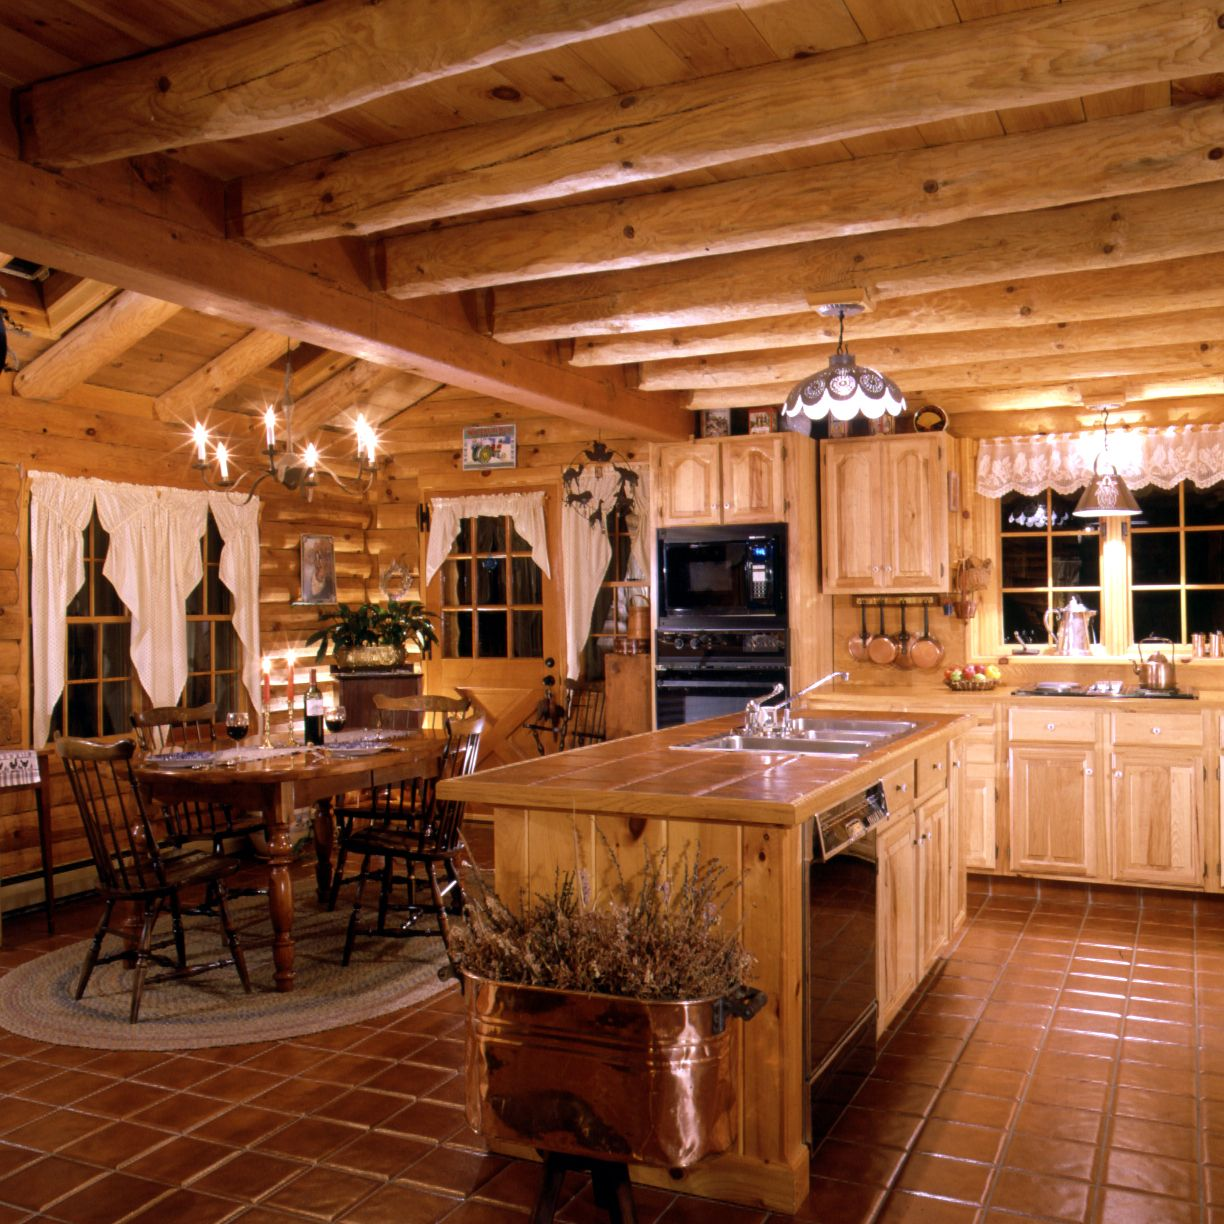 Nice Log Home Kitchen ~ Warmth Of Tiles For Island Counter And Floors